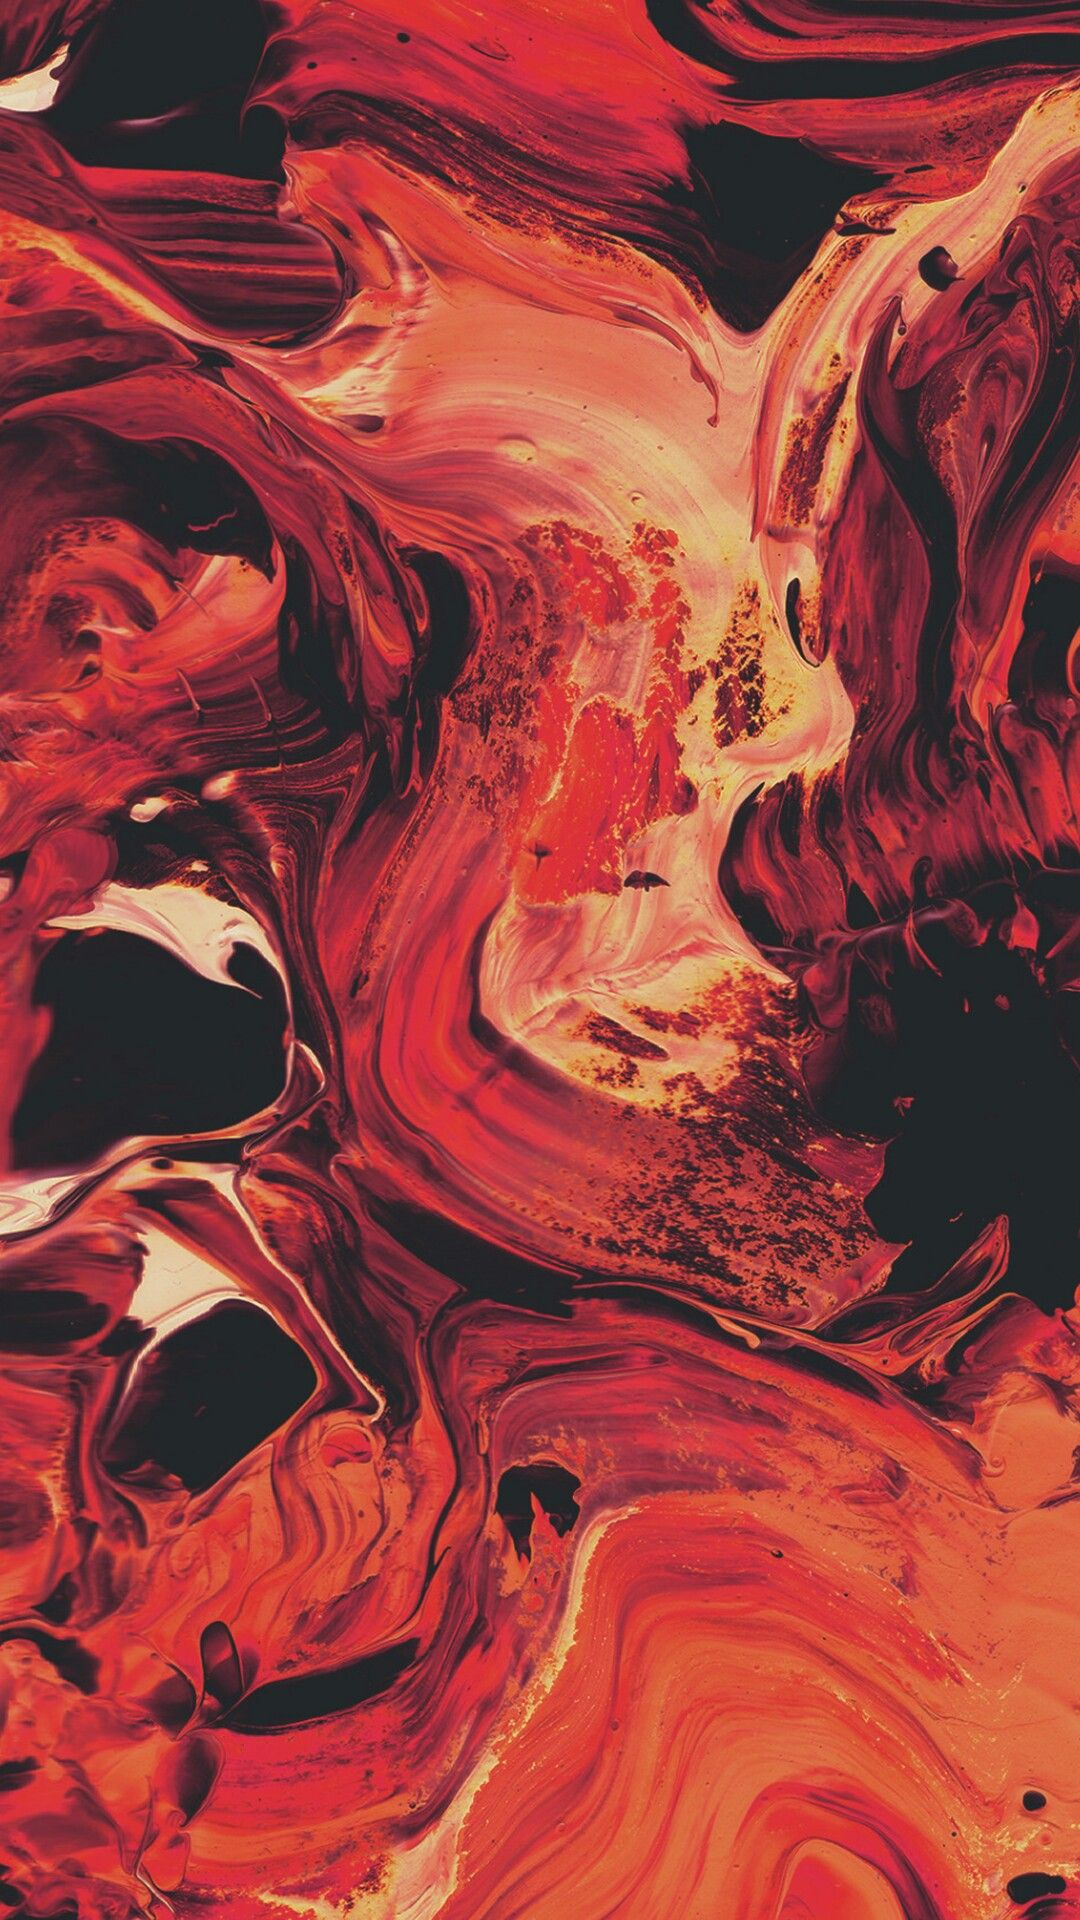 Pin By Zoe On Abstract Amoled Liquid Gradient Red Marble Wallpaper Apple Wallpaper Marble Wallpaper